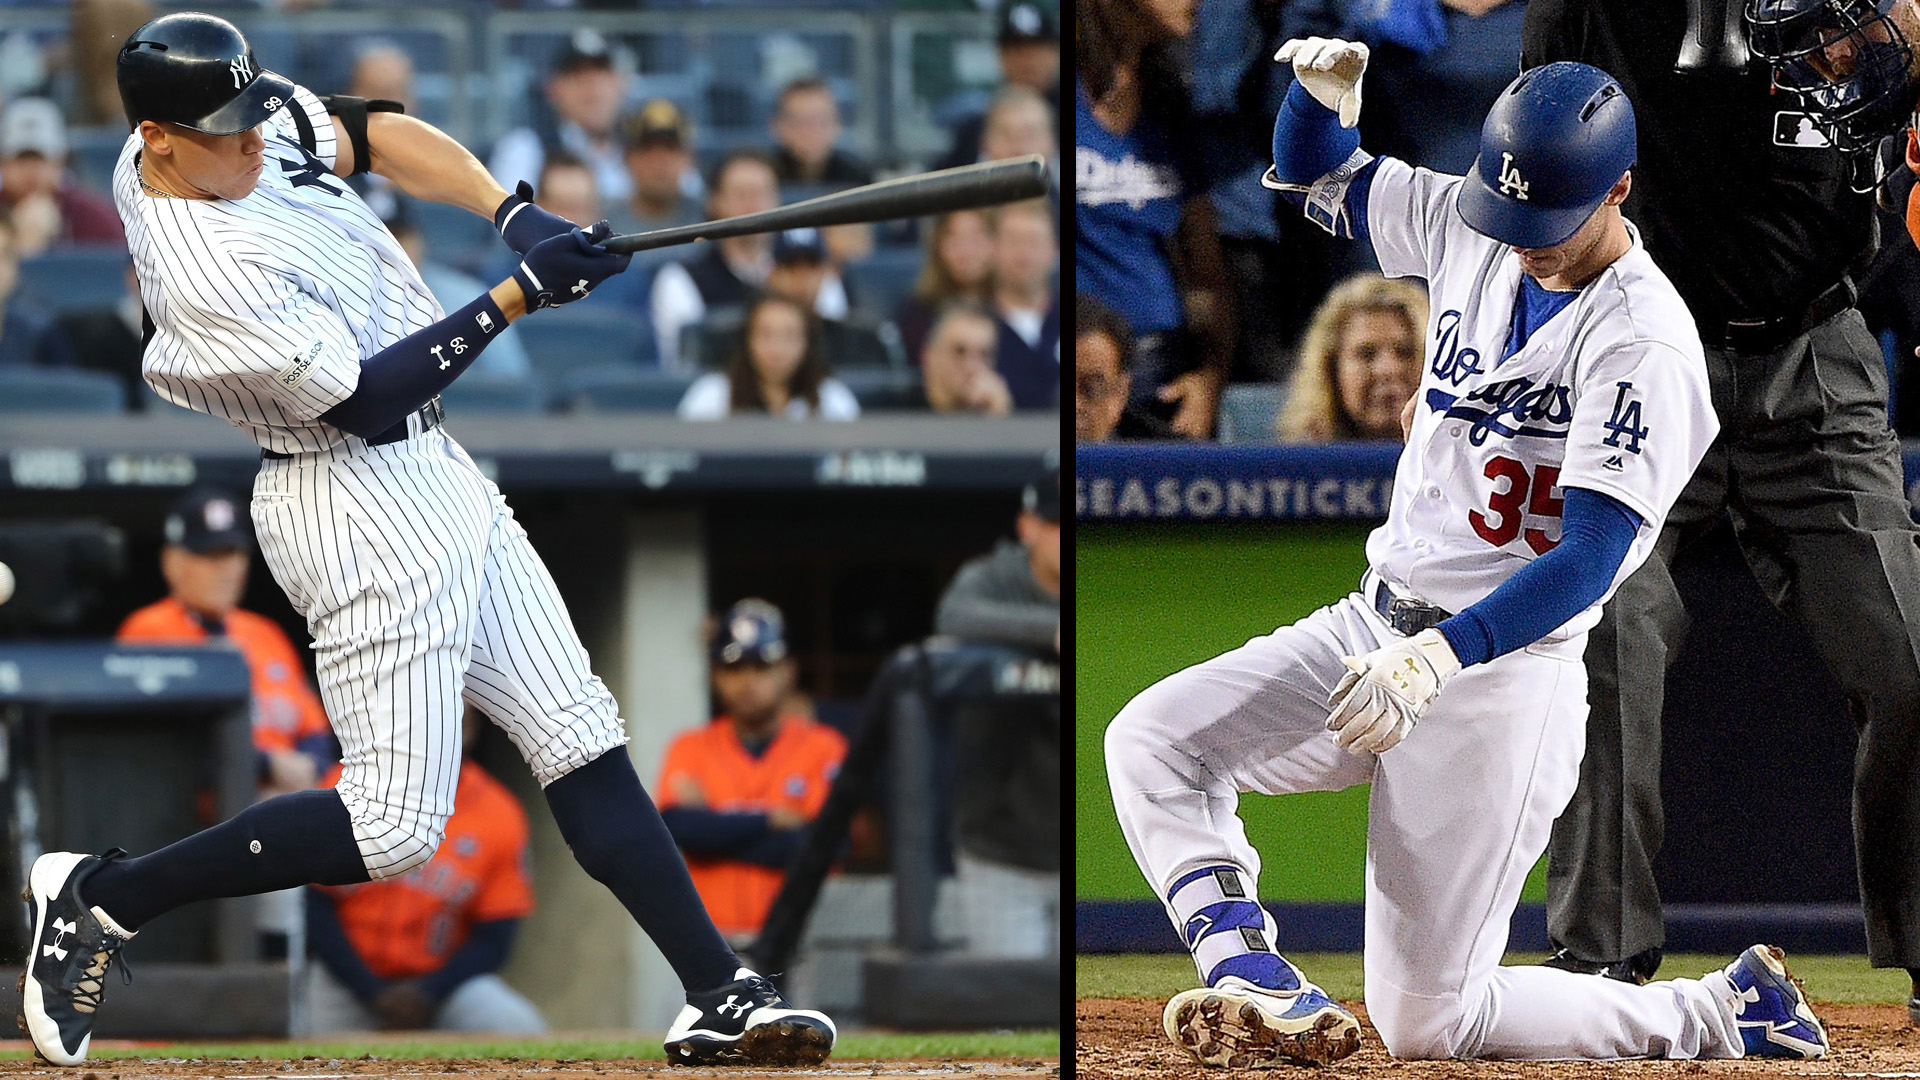 Aaron-judge-left-and-cody-bellinger-right_1mxrzcyrq93u51xc8muil7h8hp